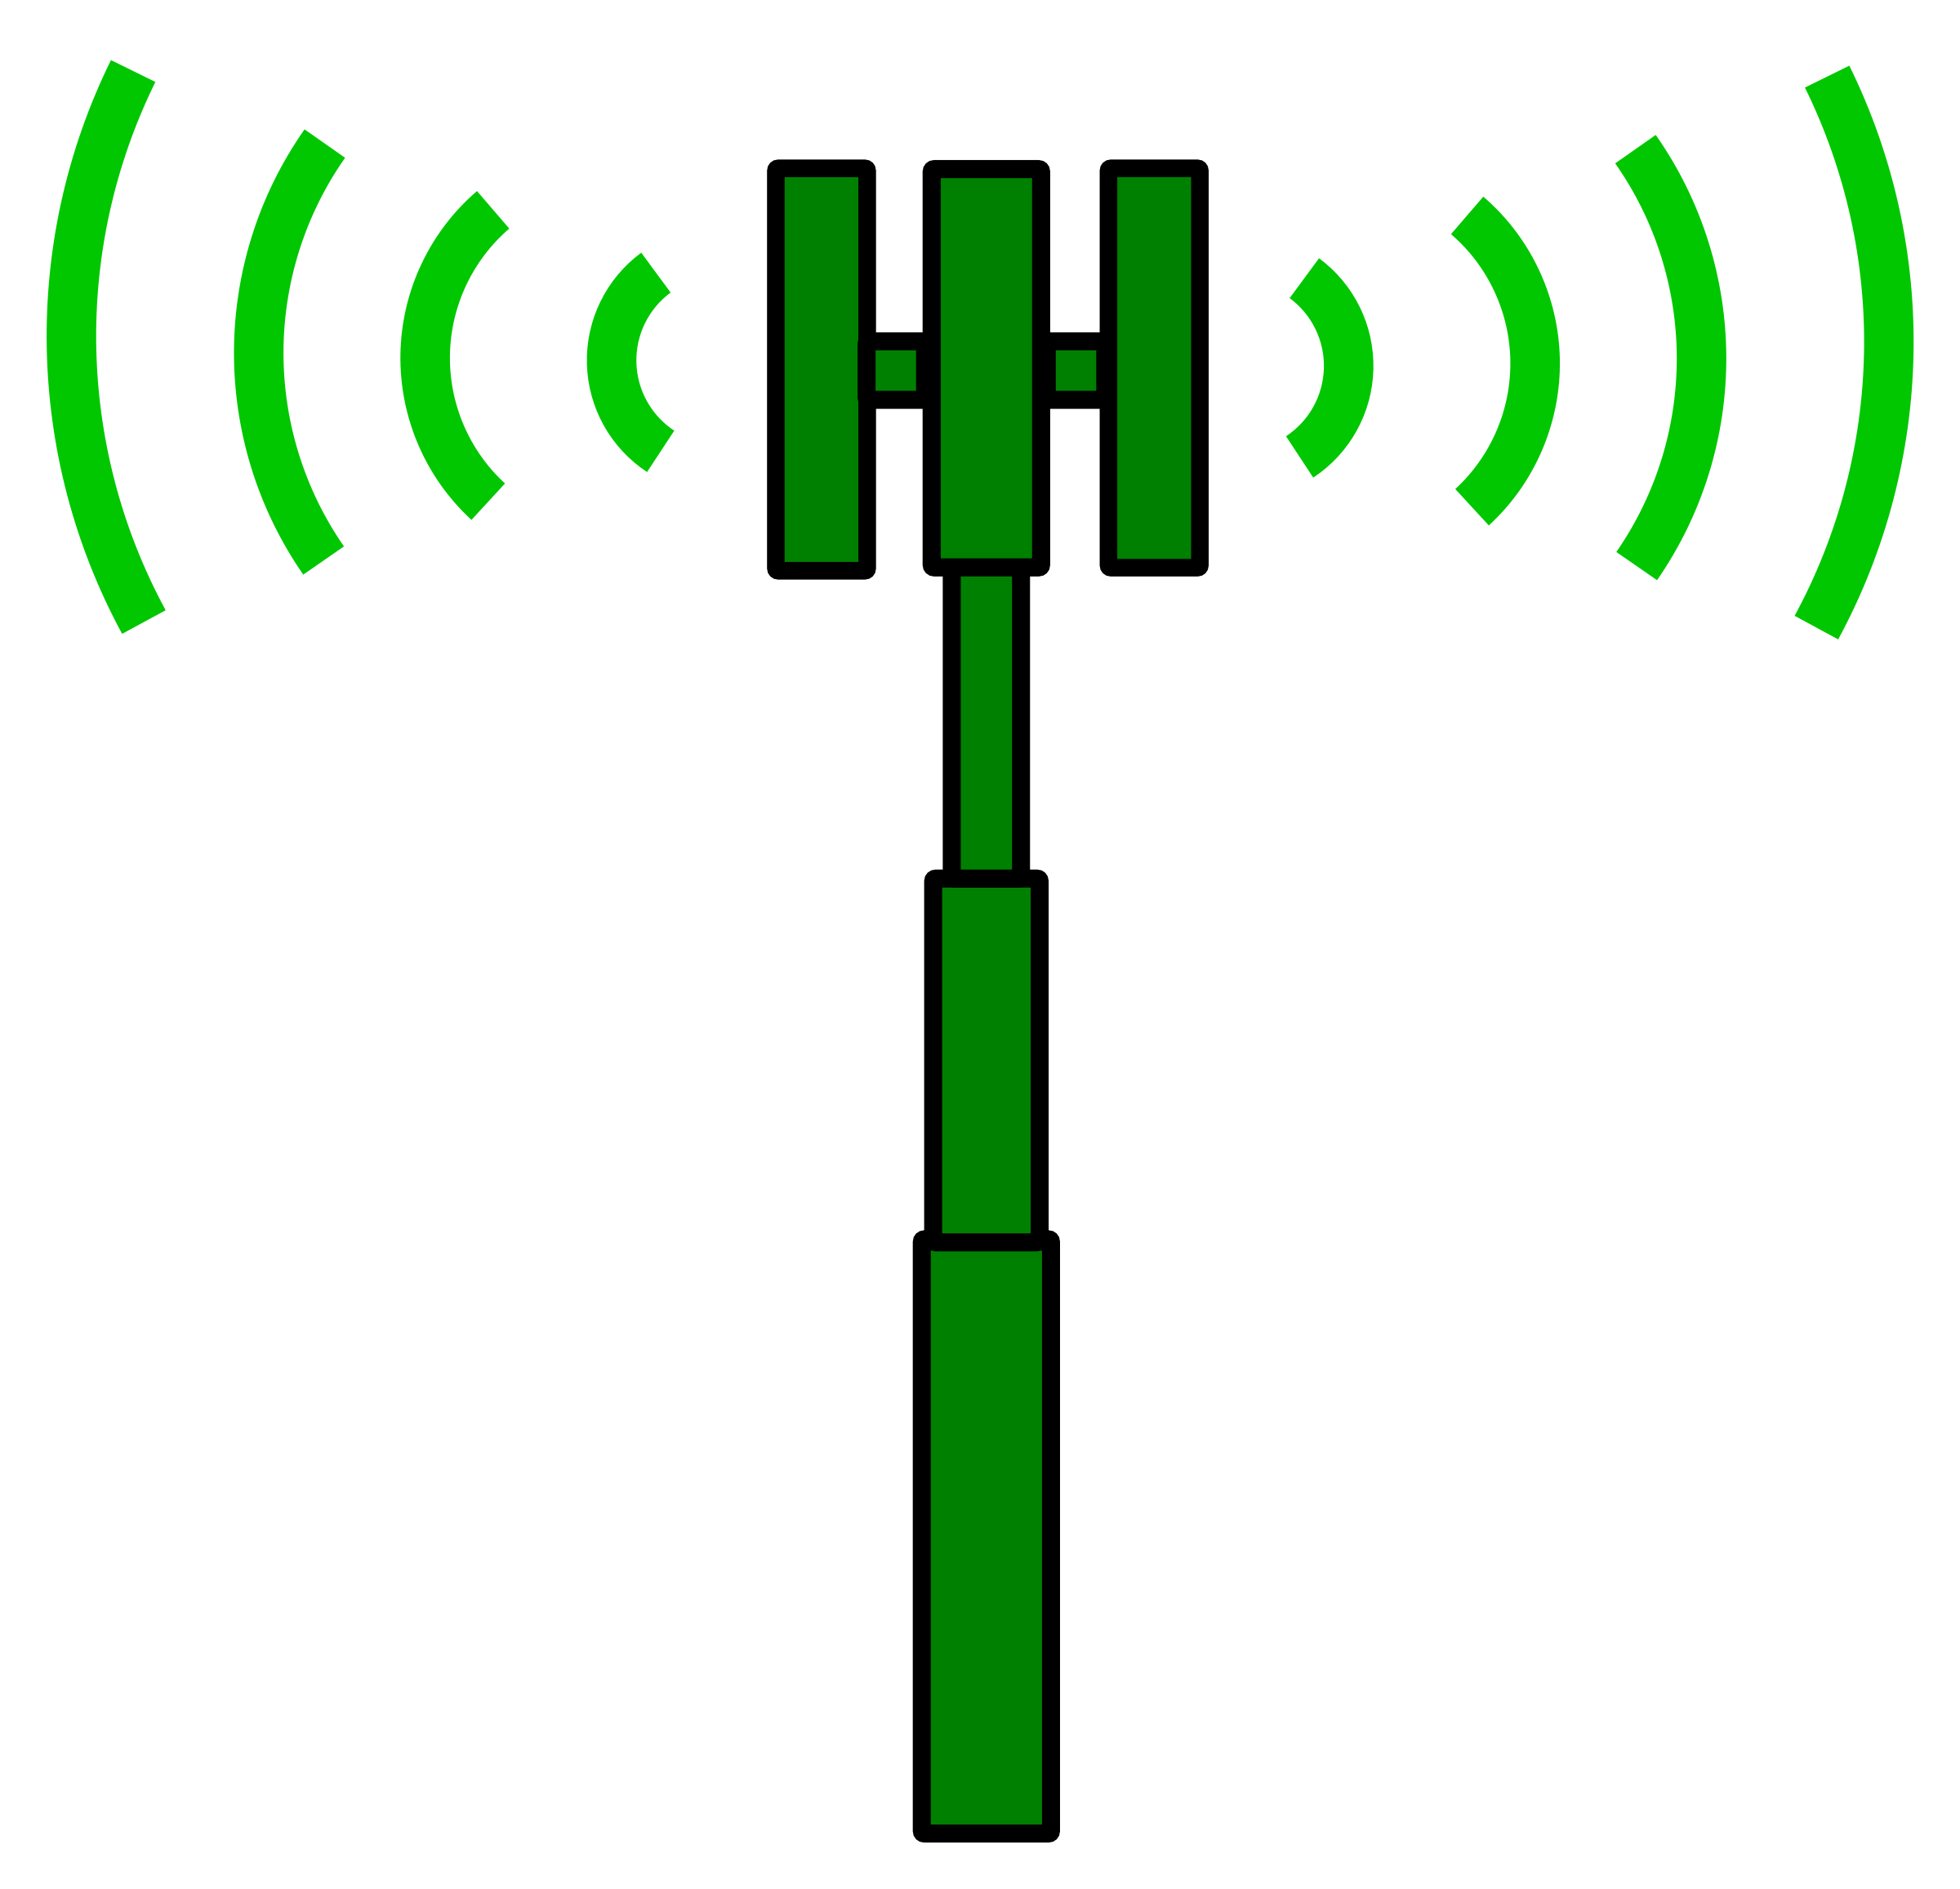 Logo clipart reception. Cell site transmitter big